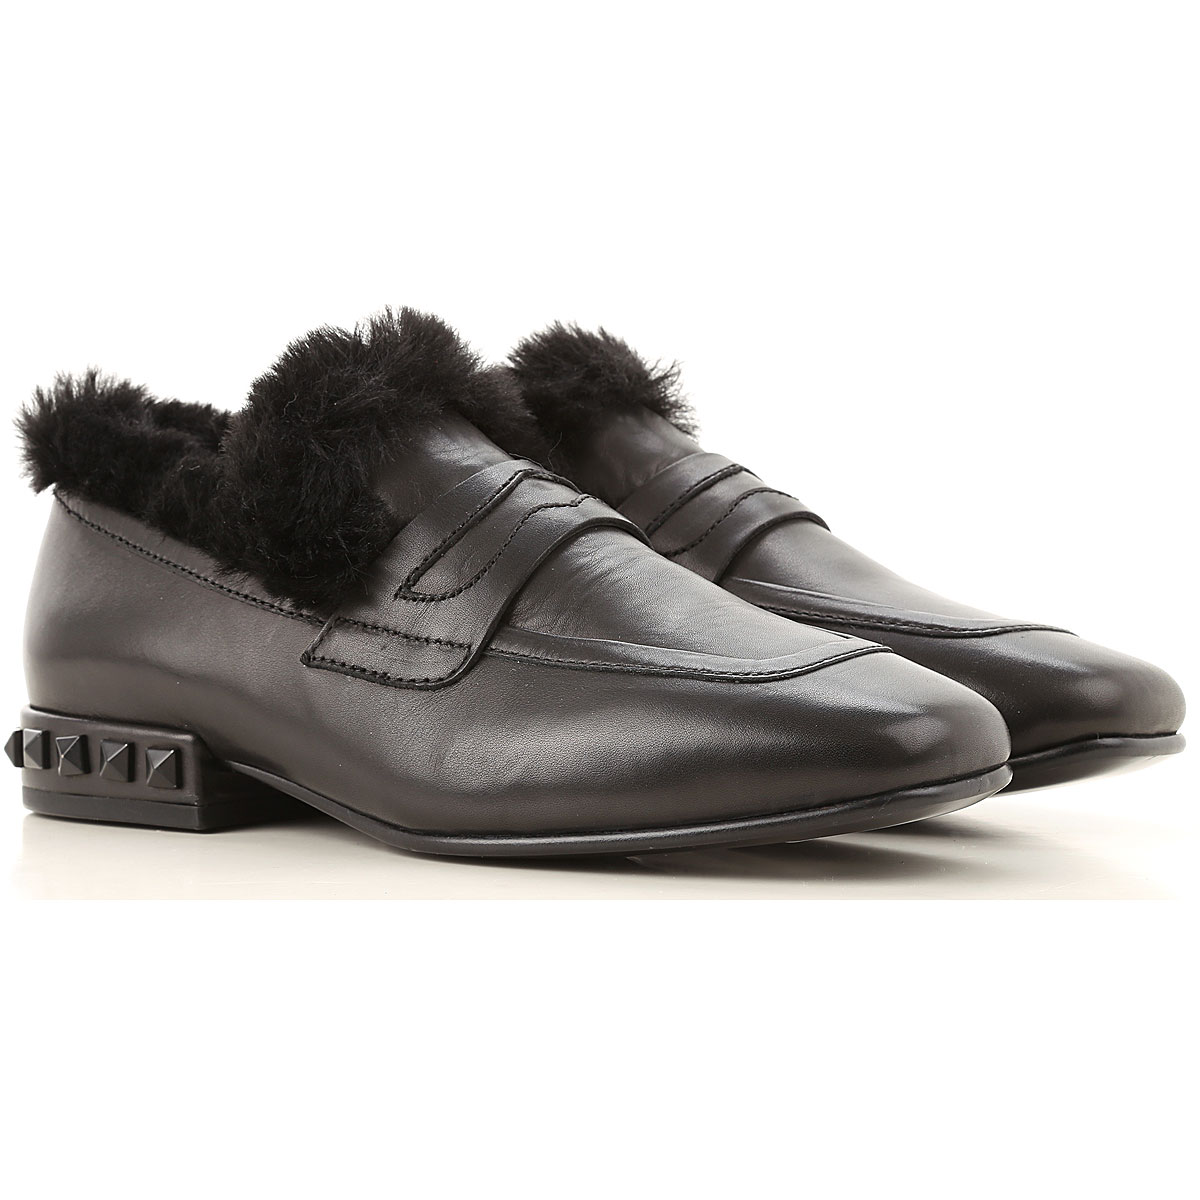 Ash Loafers for Women On Sale in Outlet, Black, Leather, 2019, 6 7